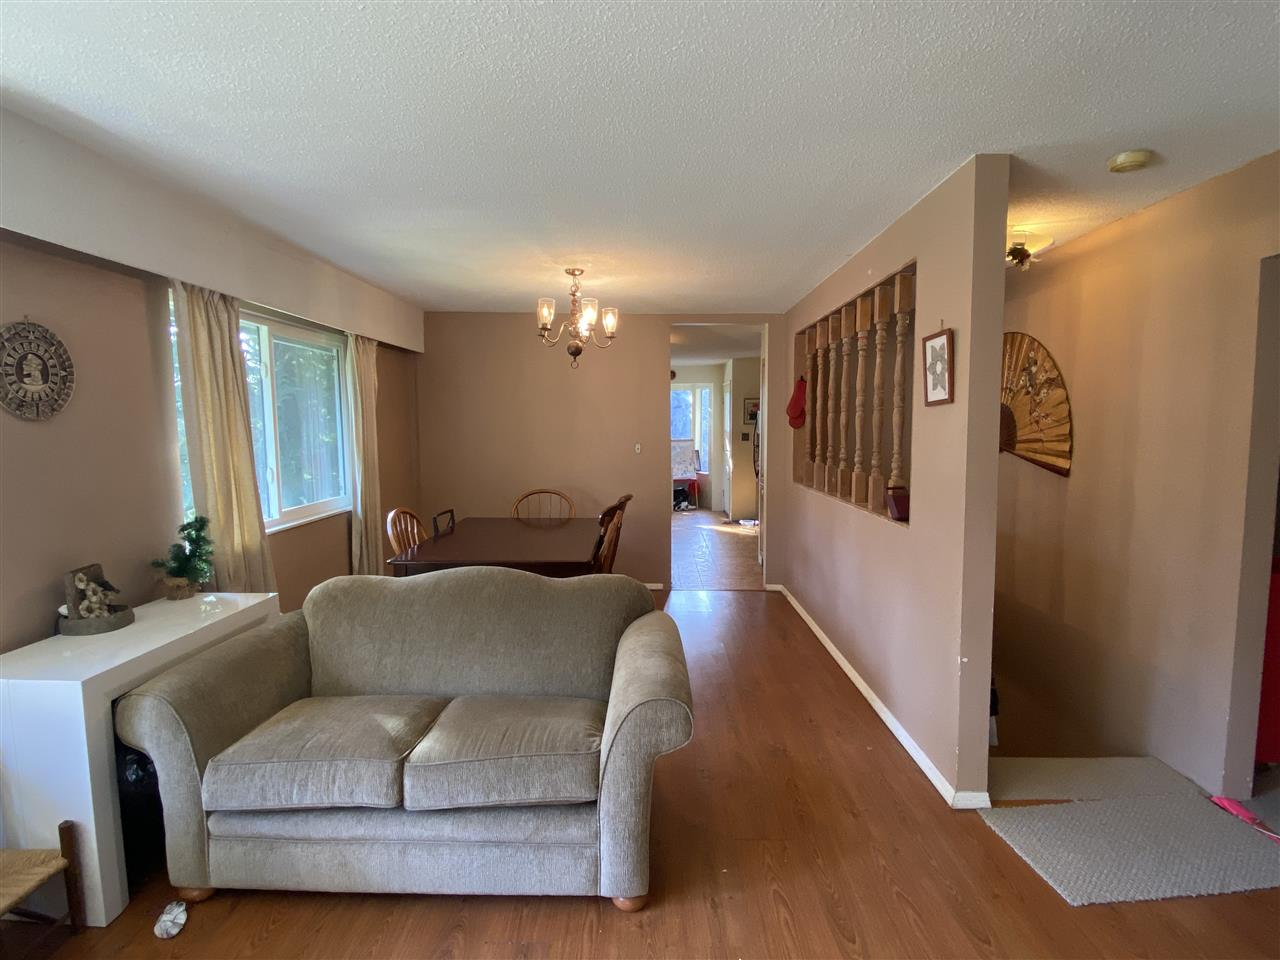 962 FREDERICK PLACE - Lynn Valley House/Single Family for sale, 4 Bedrooms (R2541307) - #12